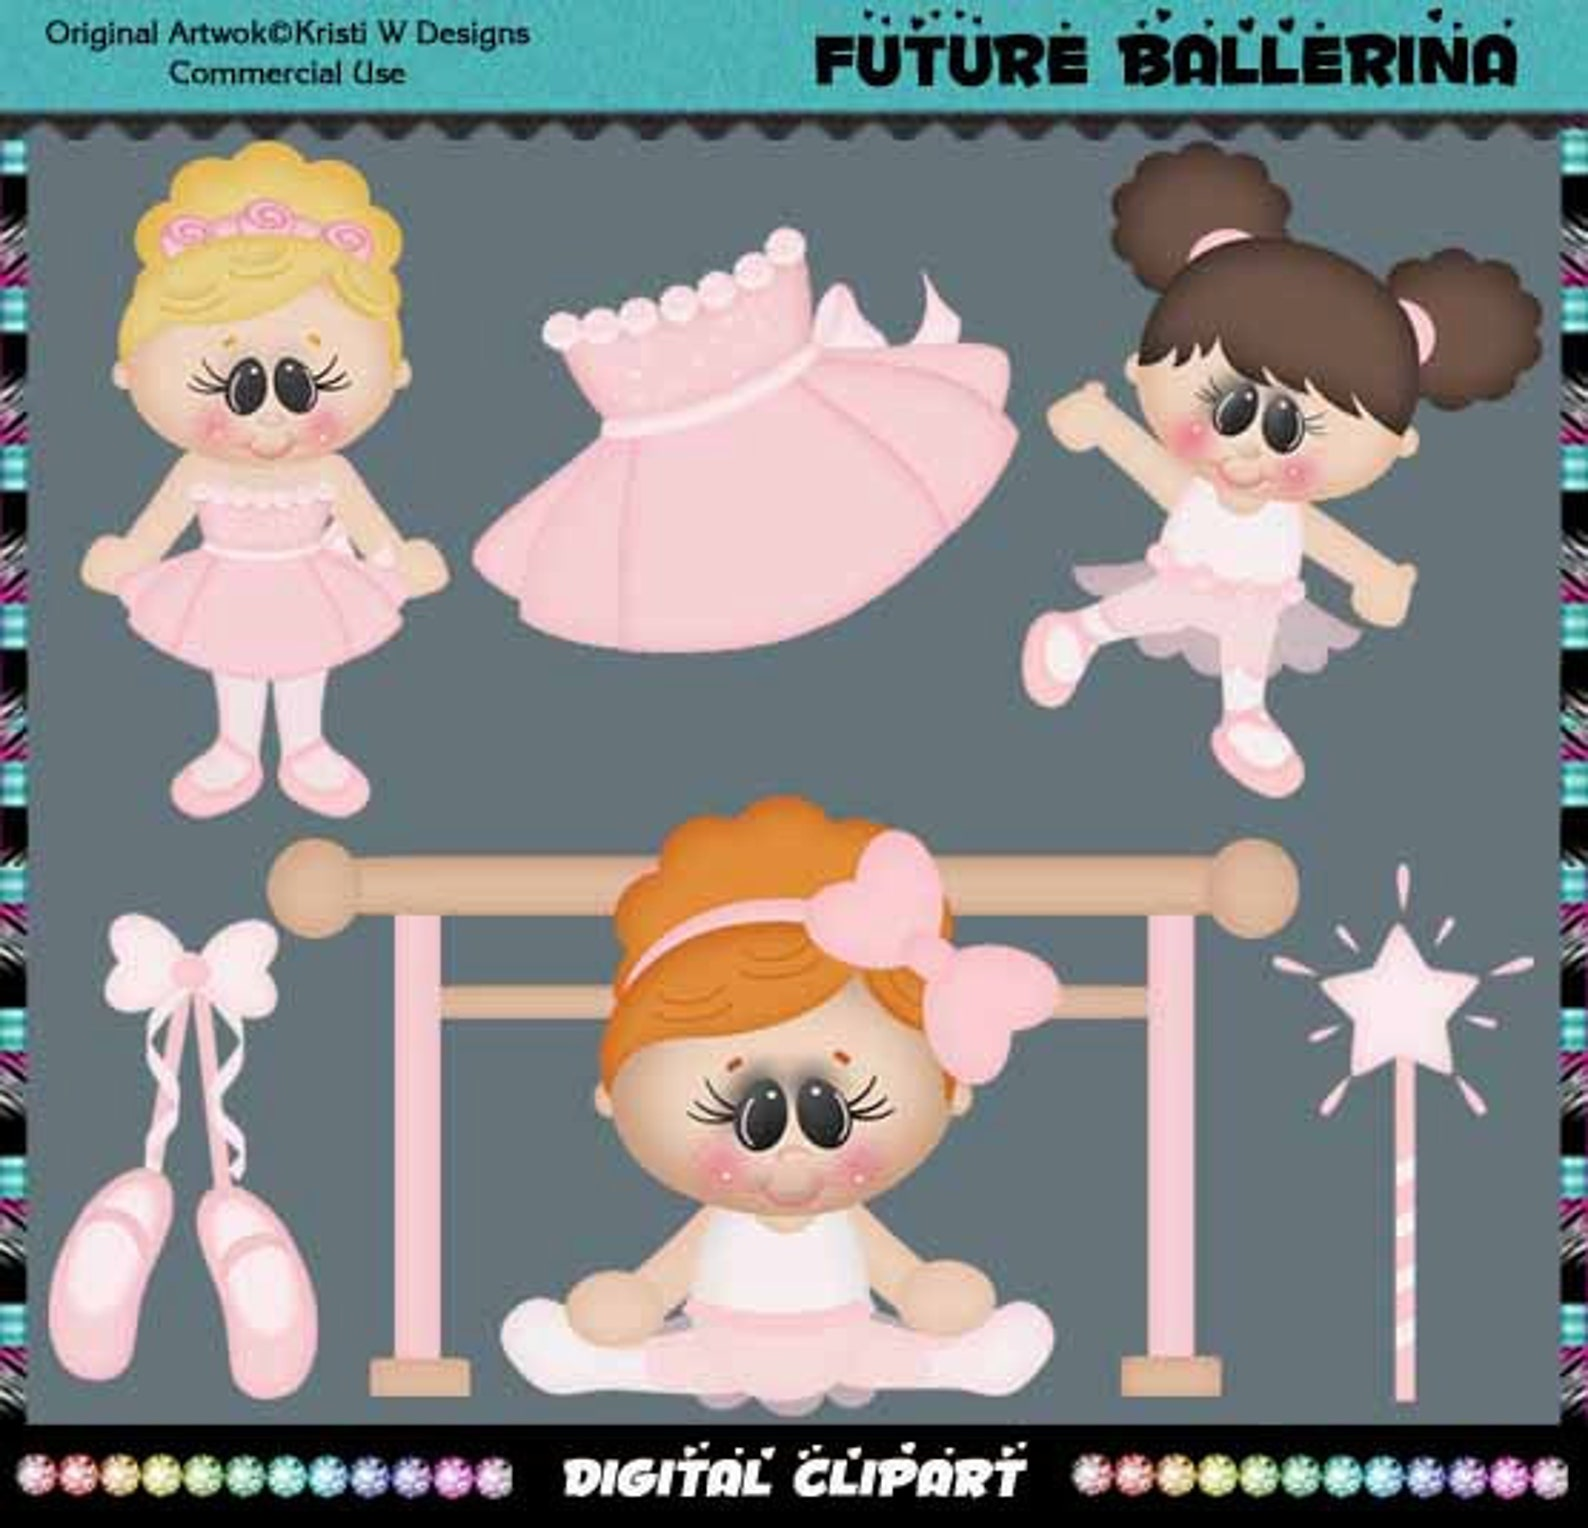 future ballerina, ballet, dancer, dance, when i grow up collection - instant download - commercial use digital clipart elements